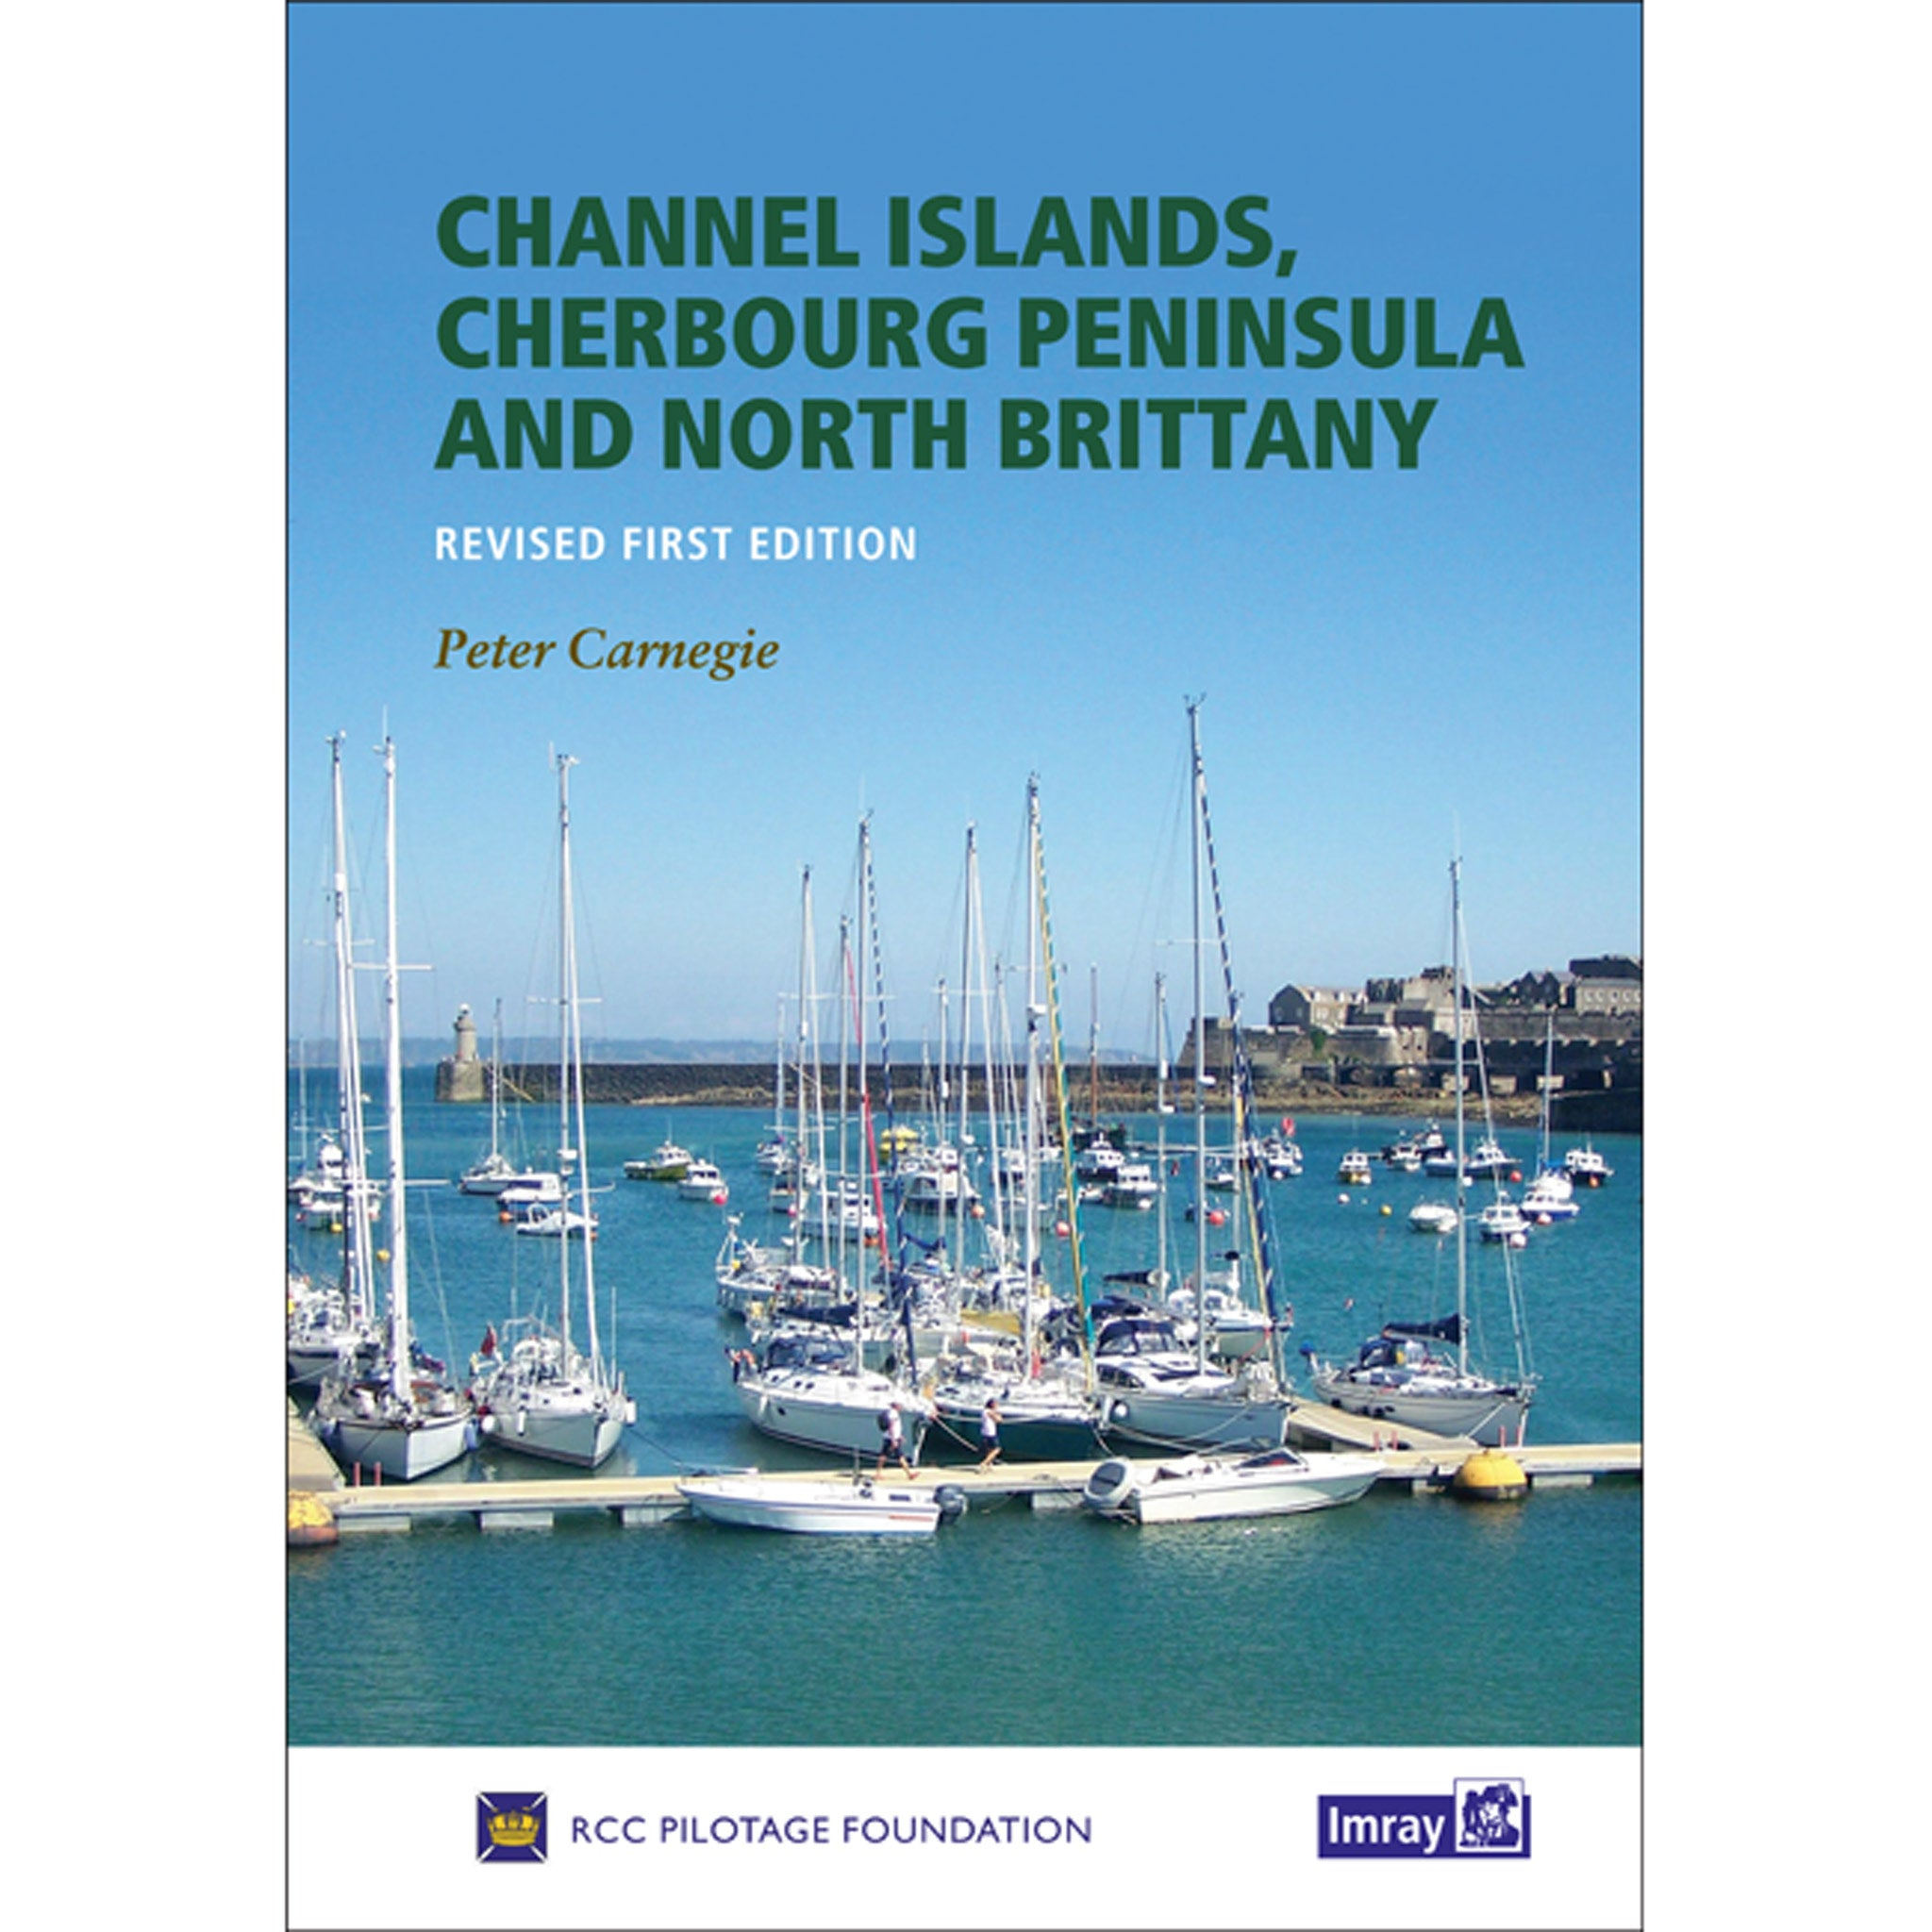 Imray Pilot Channel Islands, Cherbourg Penninsula